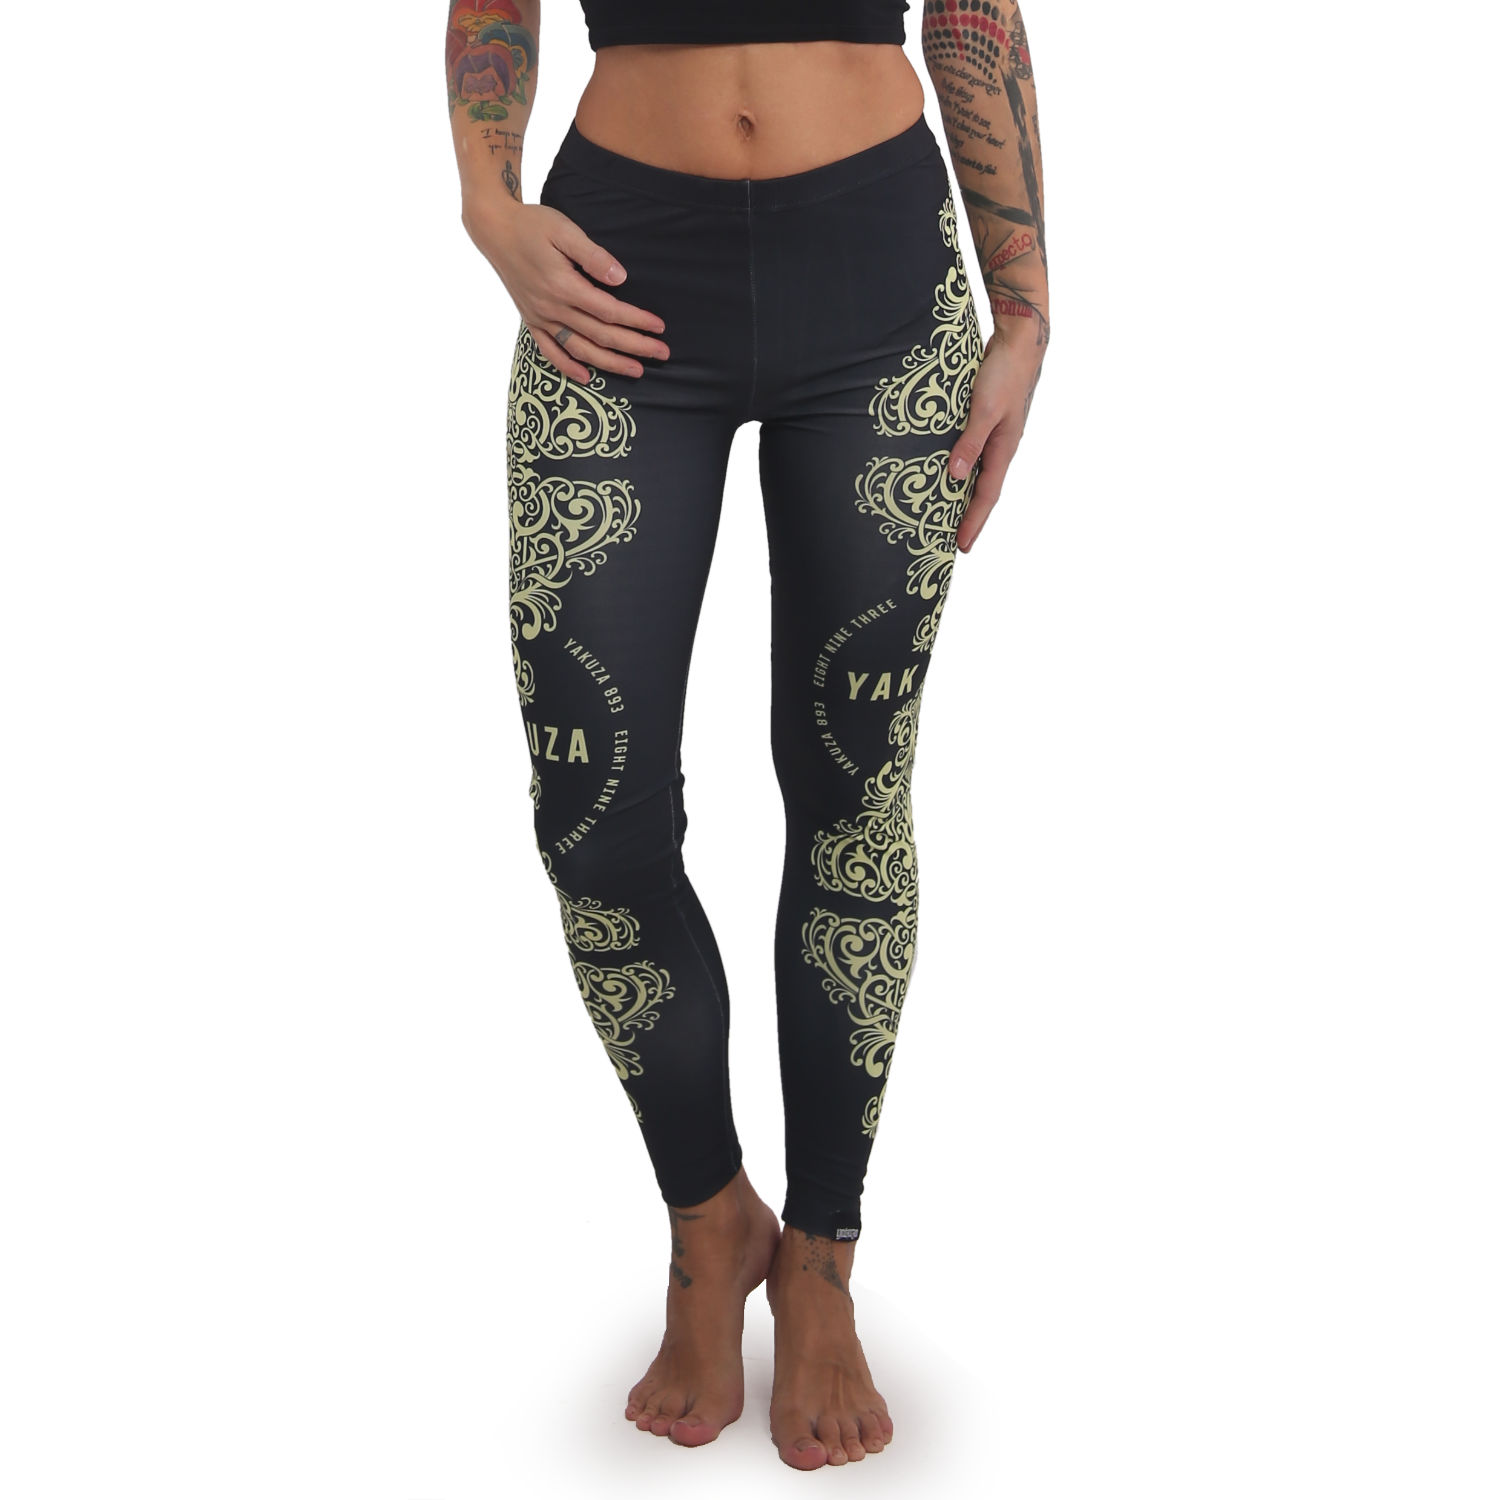 Yakuza, Ornamentic Leggings, LEB14126 BLK XXS